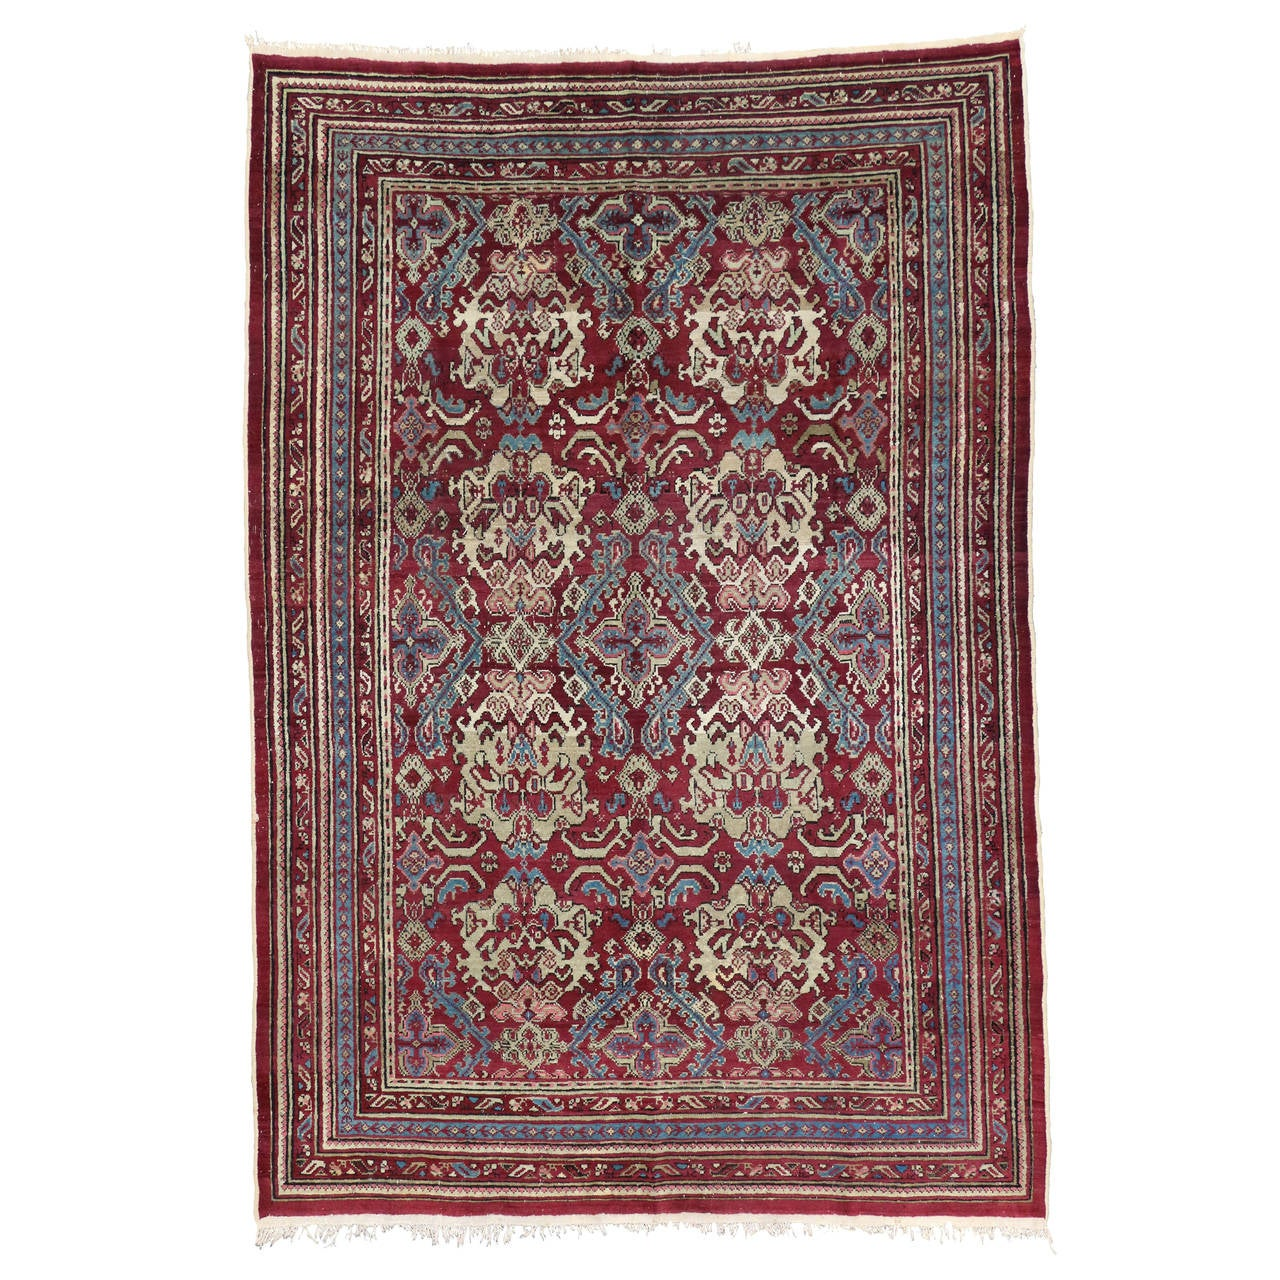 Antique Indian Agra Rug For Sale At 1stdibs: 19th Century Antique Indian Agra Rug With Modern Design